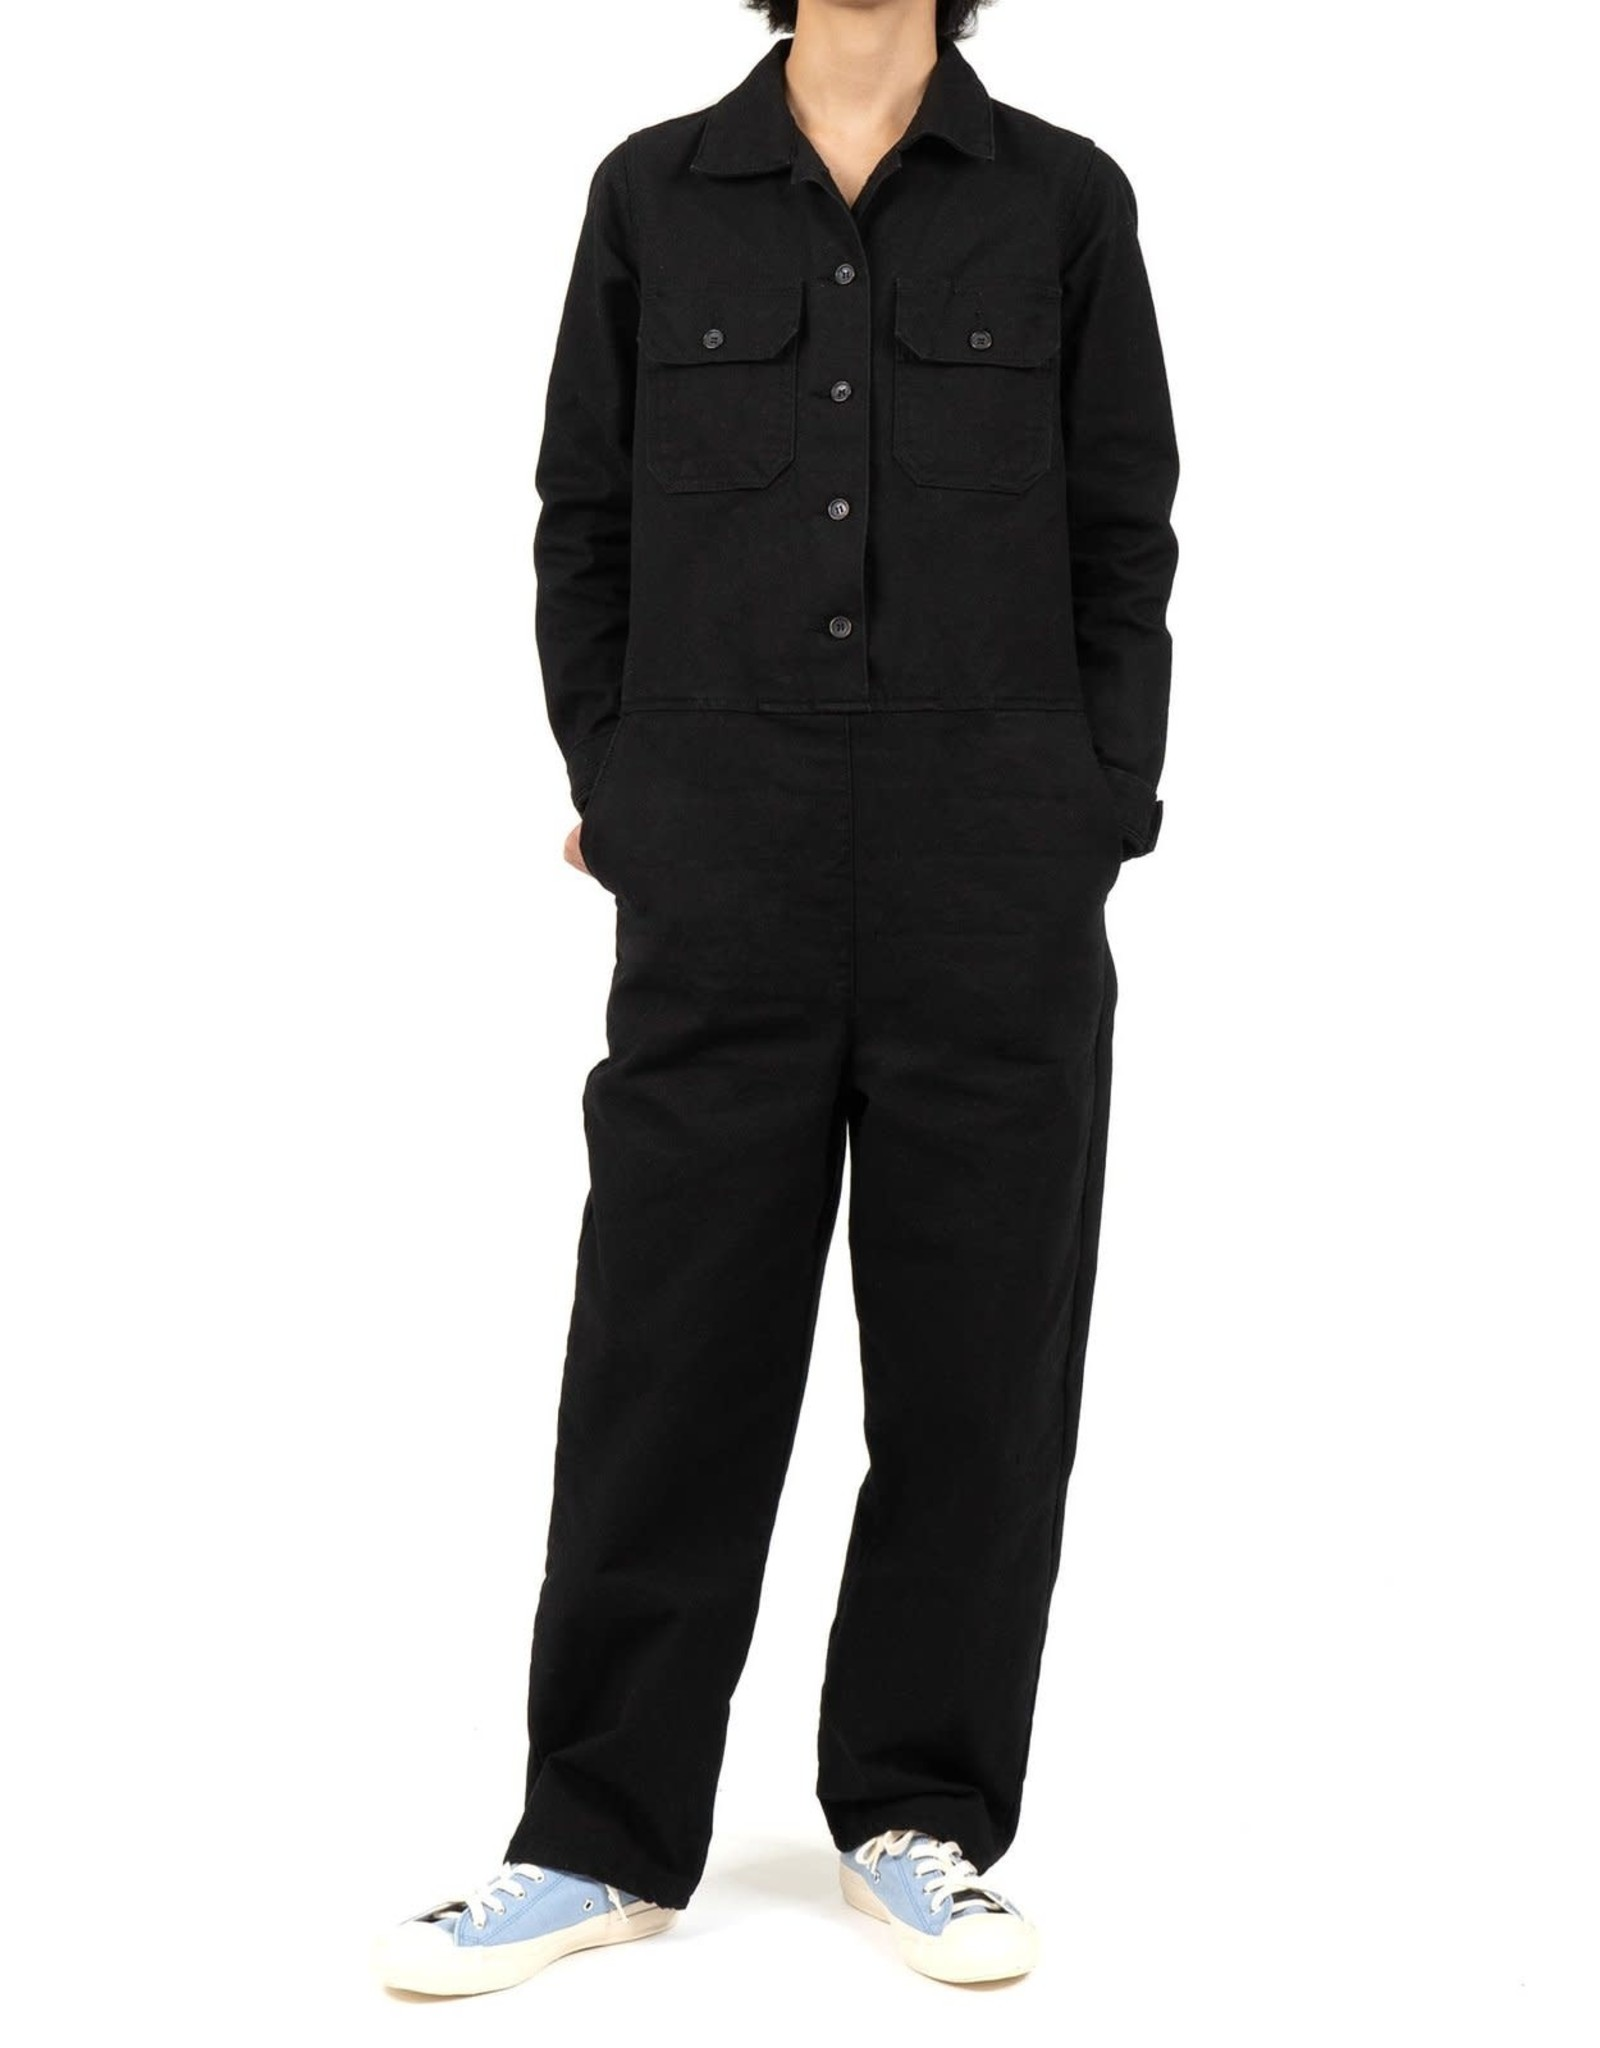 Naked and Famous Work Jumpsuit AH1920 Naked & Famous